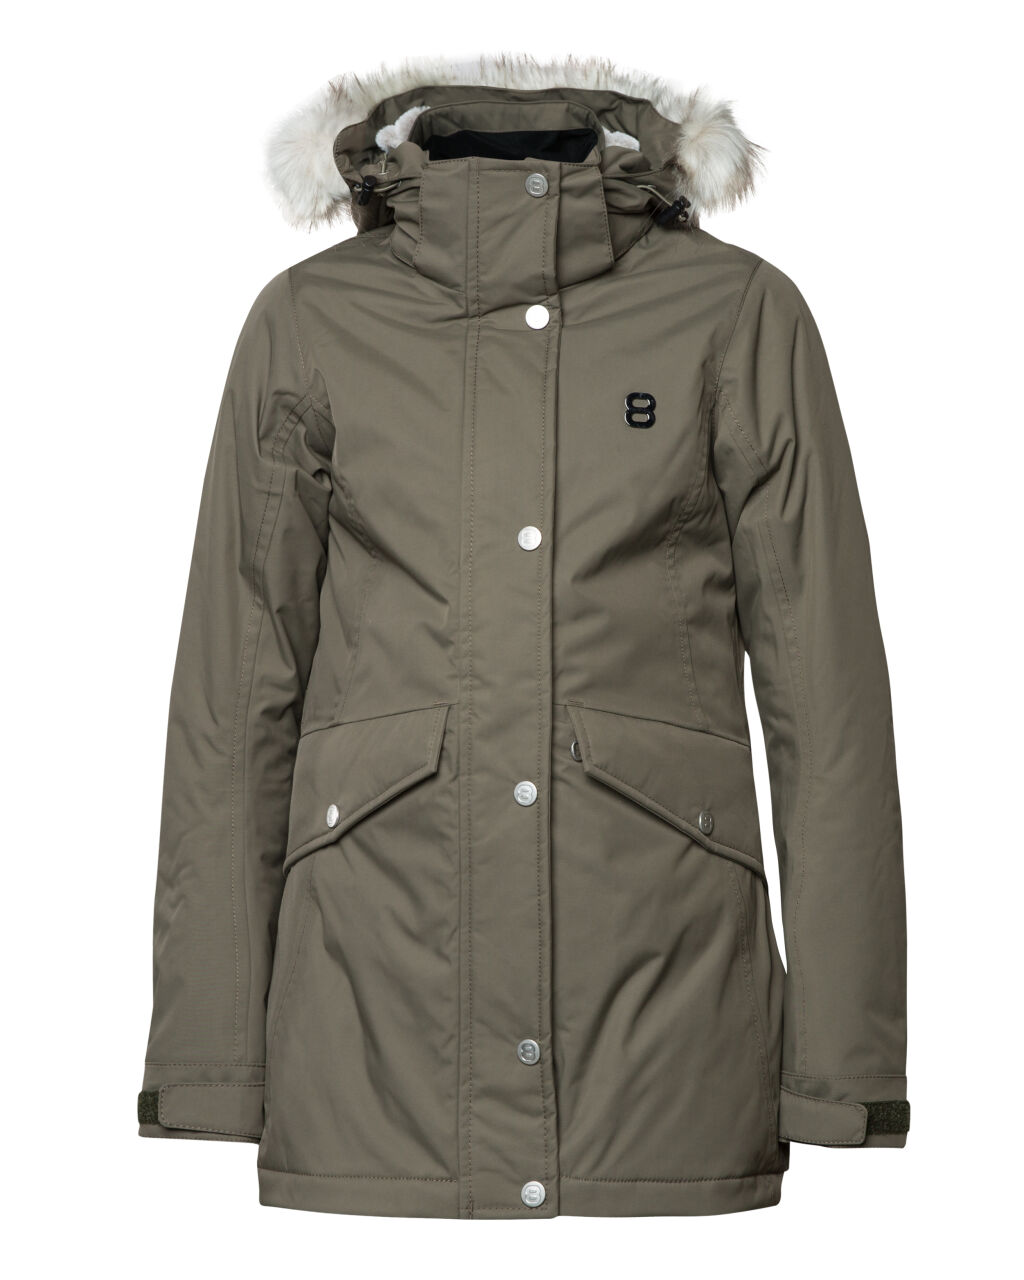 8848 Altitude Maltese Jacket Jr